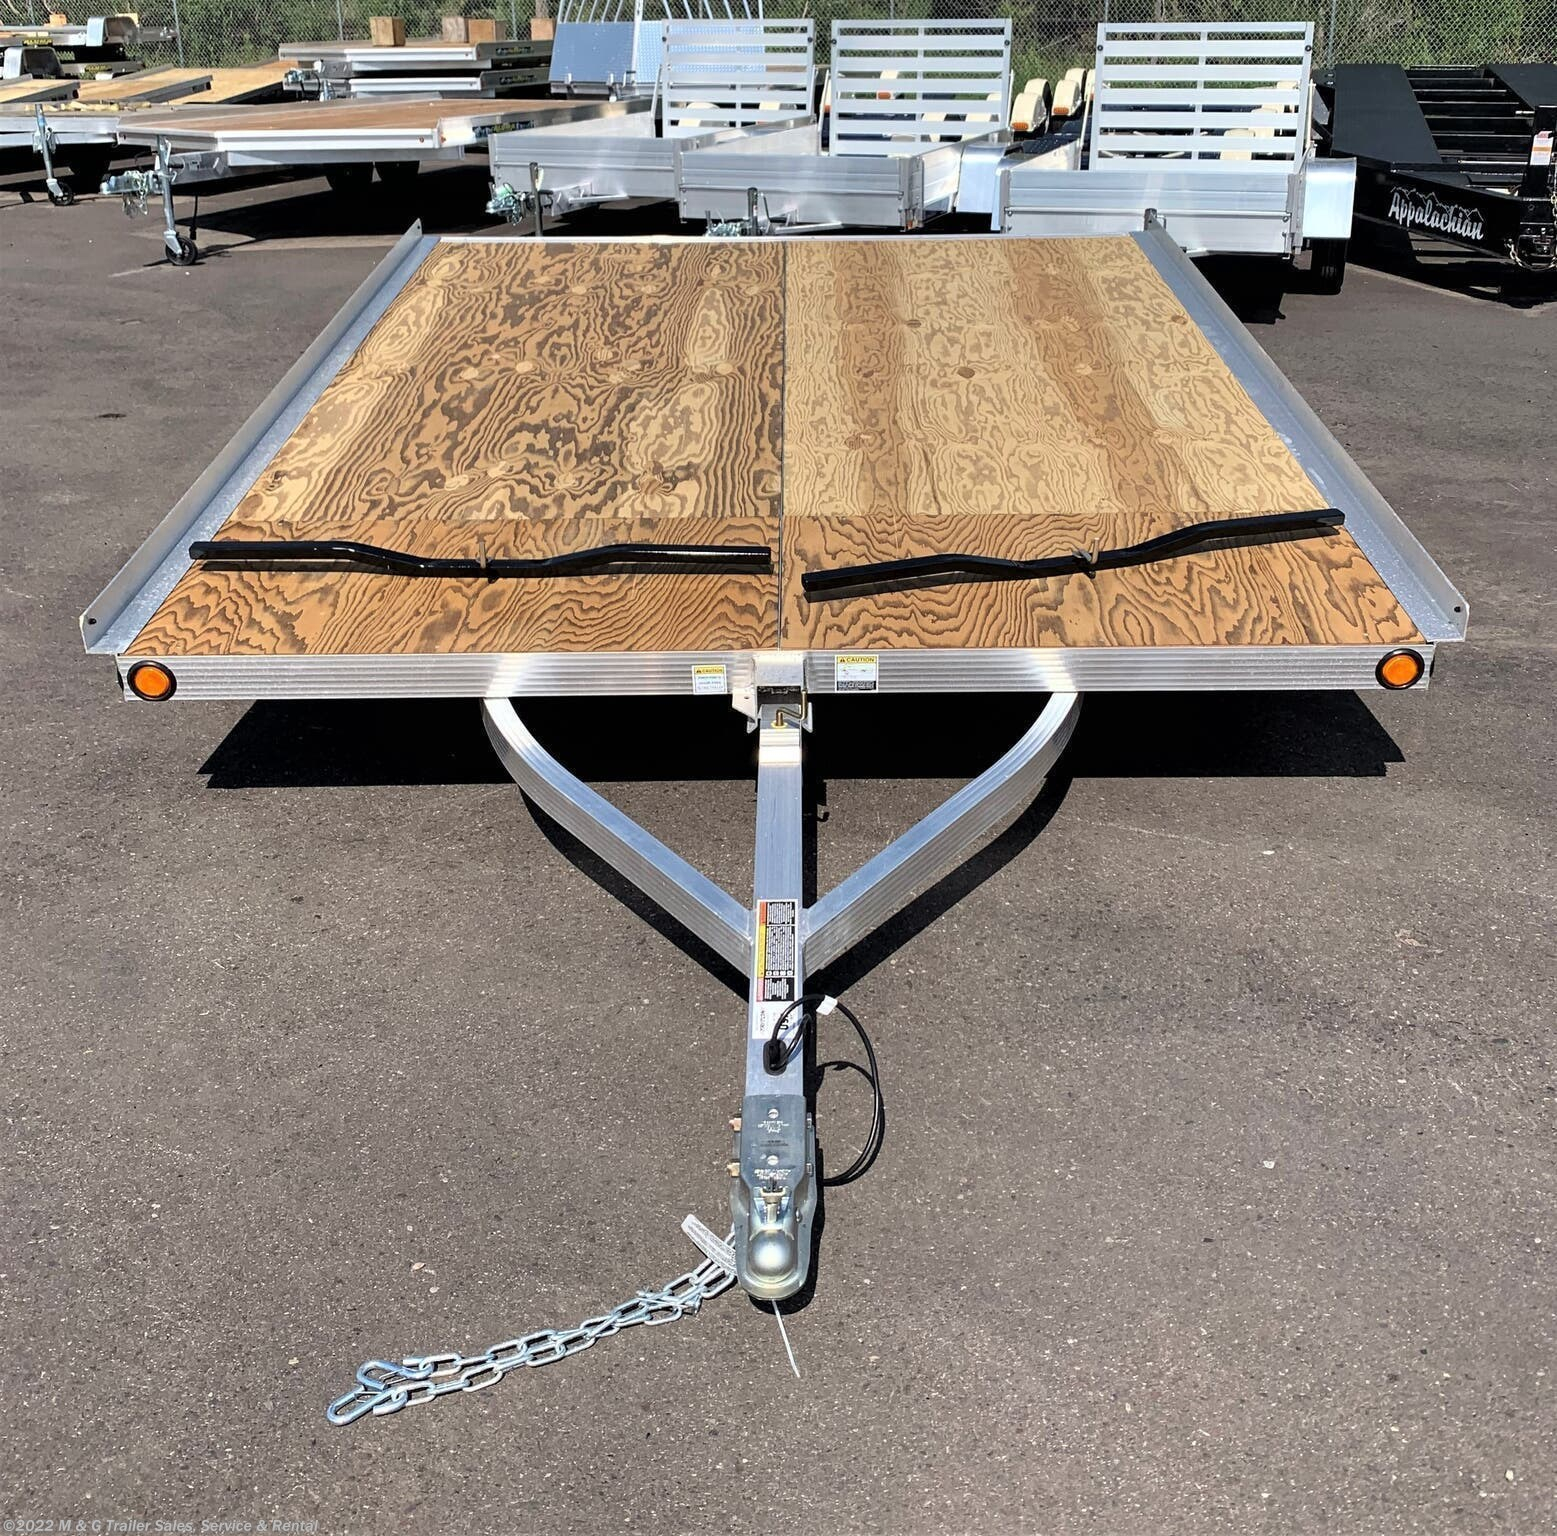 2021 Triton Trailers XT10-101 Tilt 2 Place Snowmobile Trailer - Stock #x56707